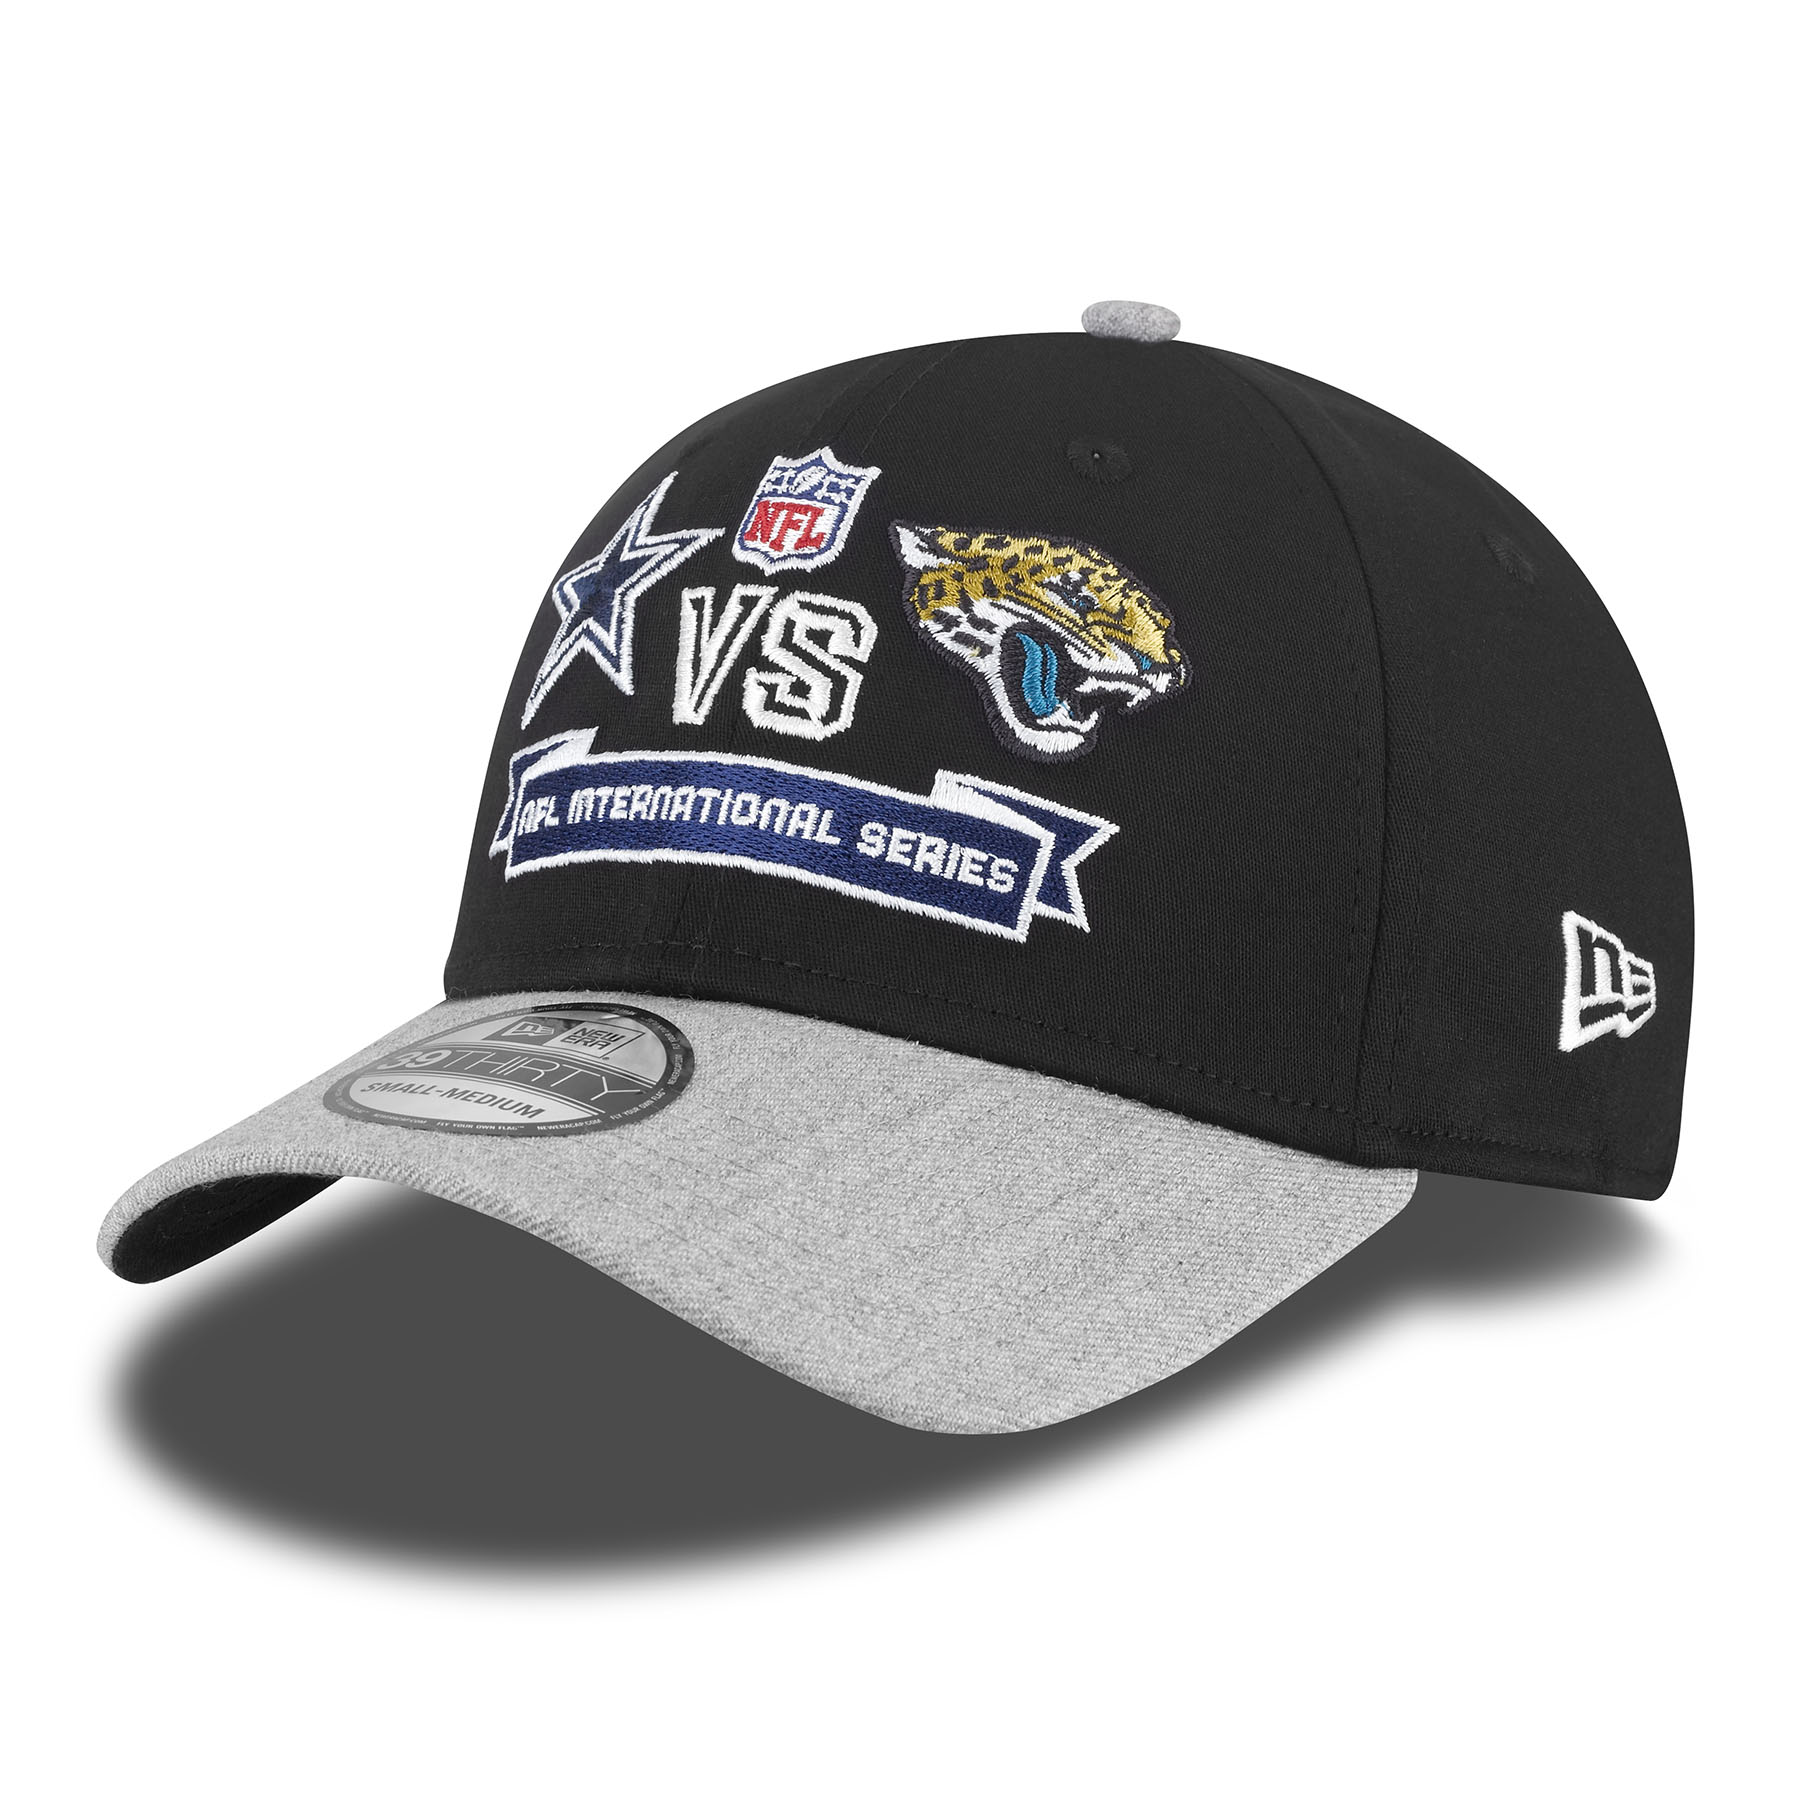 NFL International Series Game 11 New Era 39THIRTY Team Contrast Cap - Cowboys - Jaguars